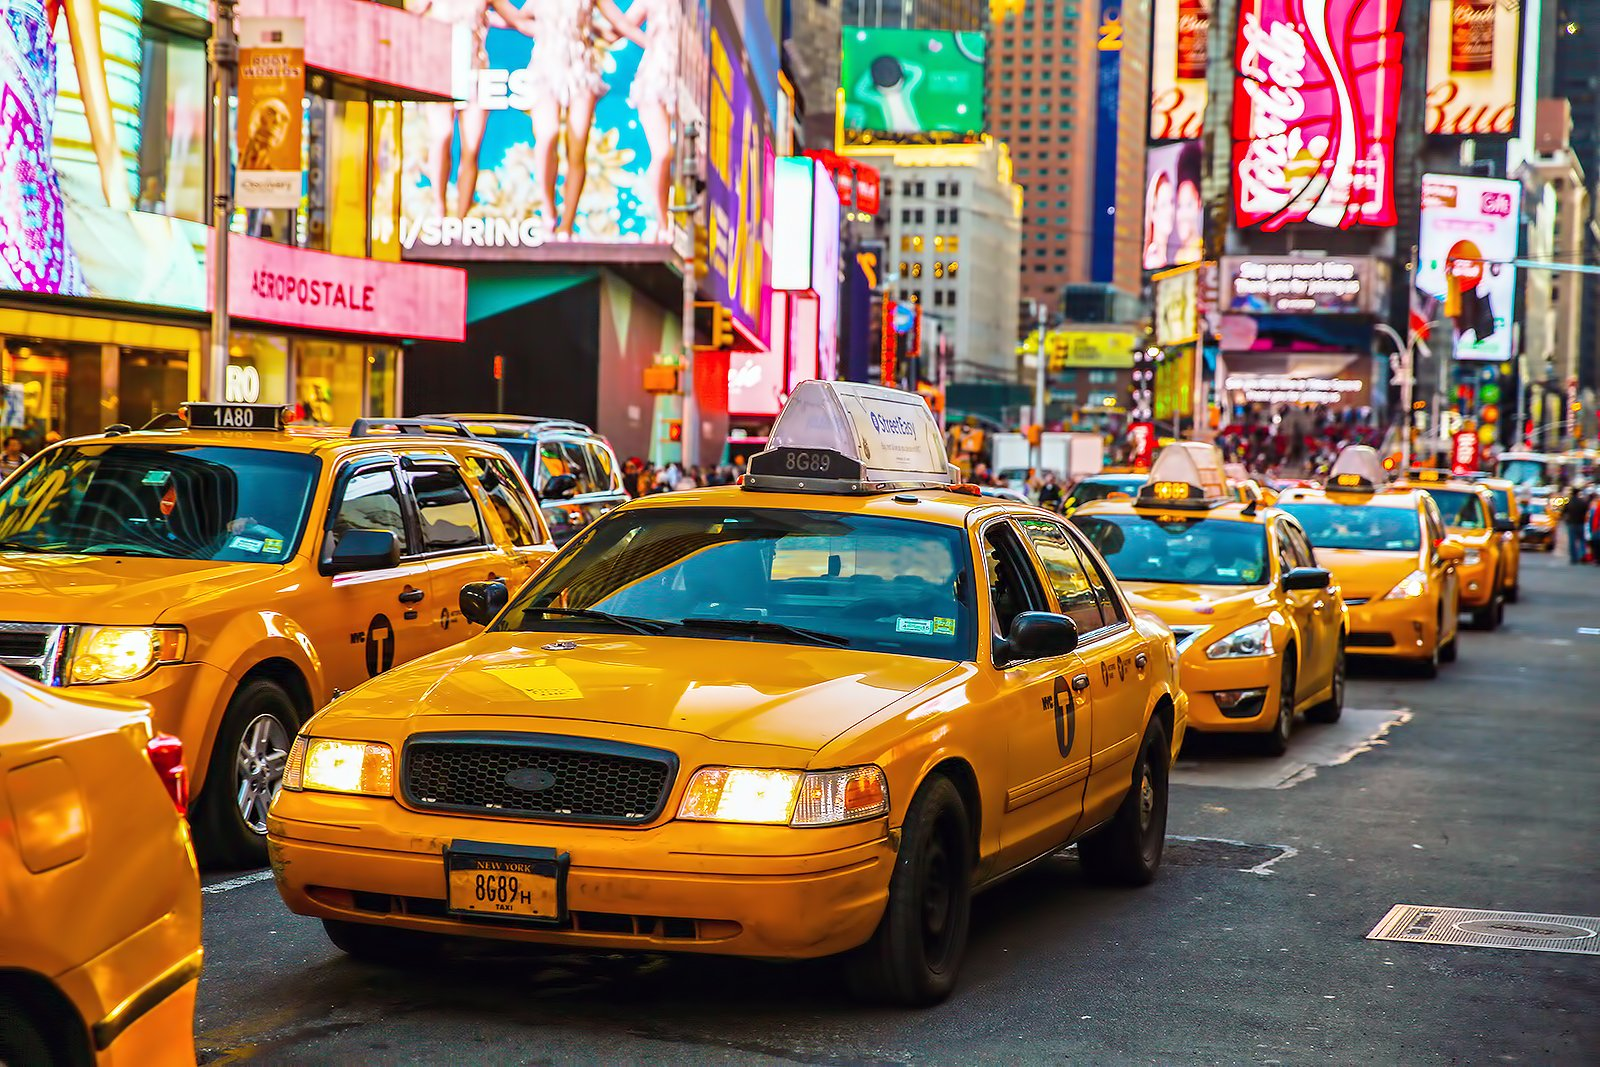 New York Travel Kit - Useful Information to Help You Start